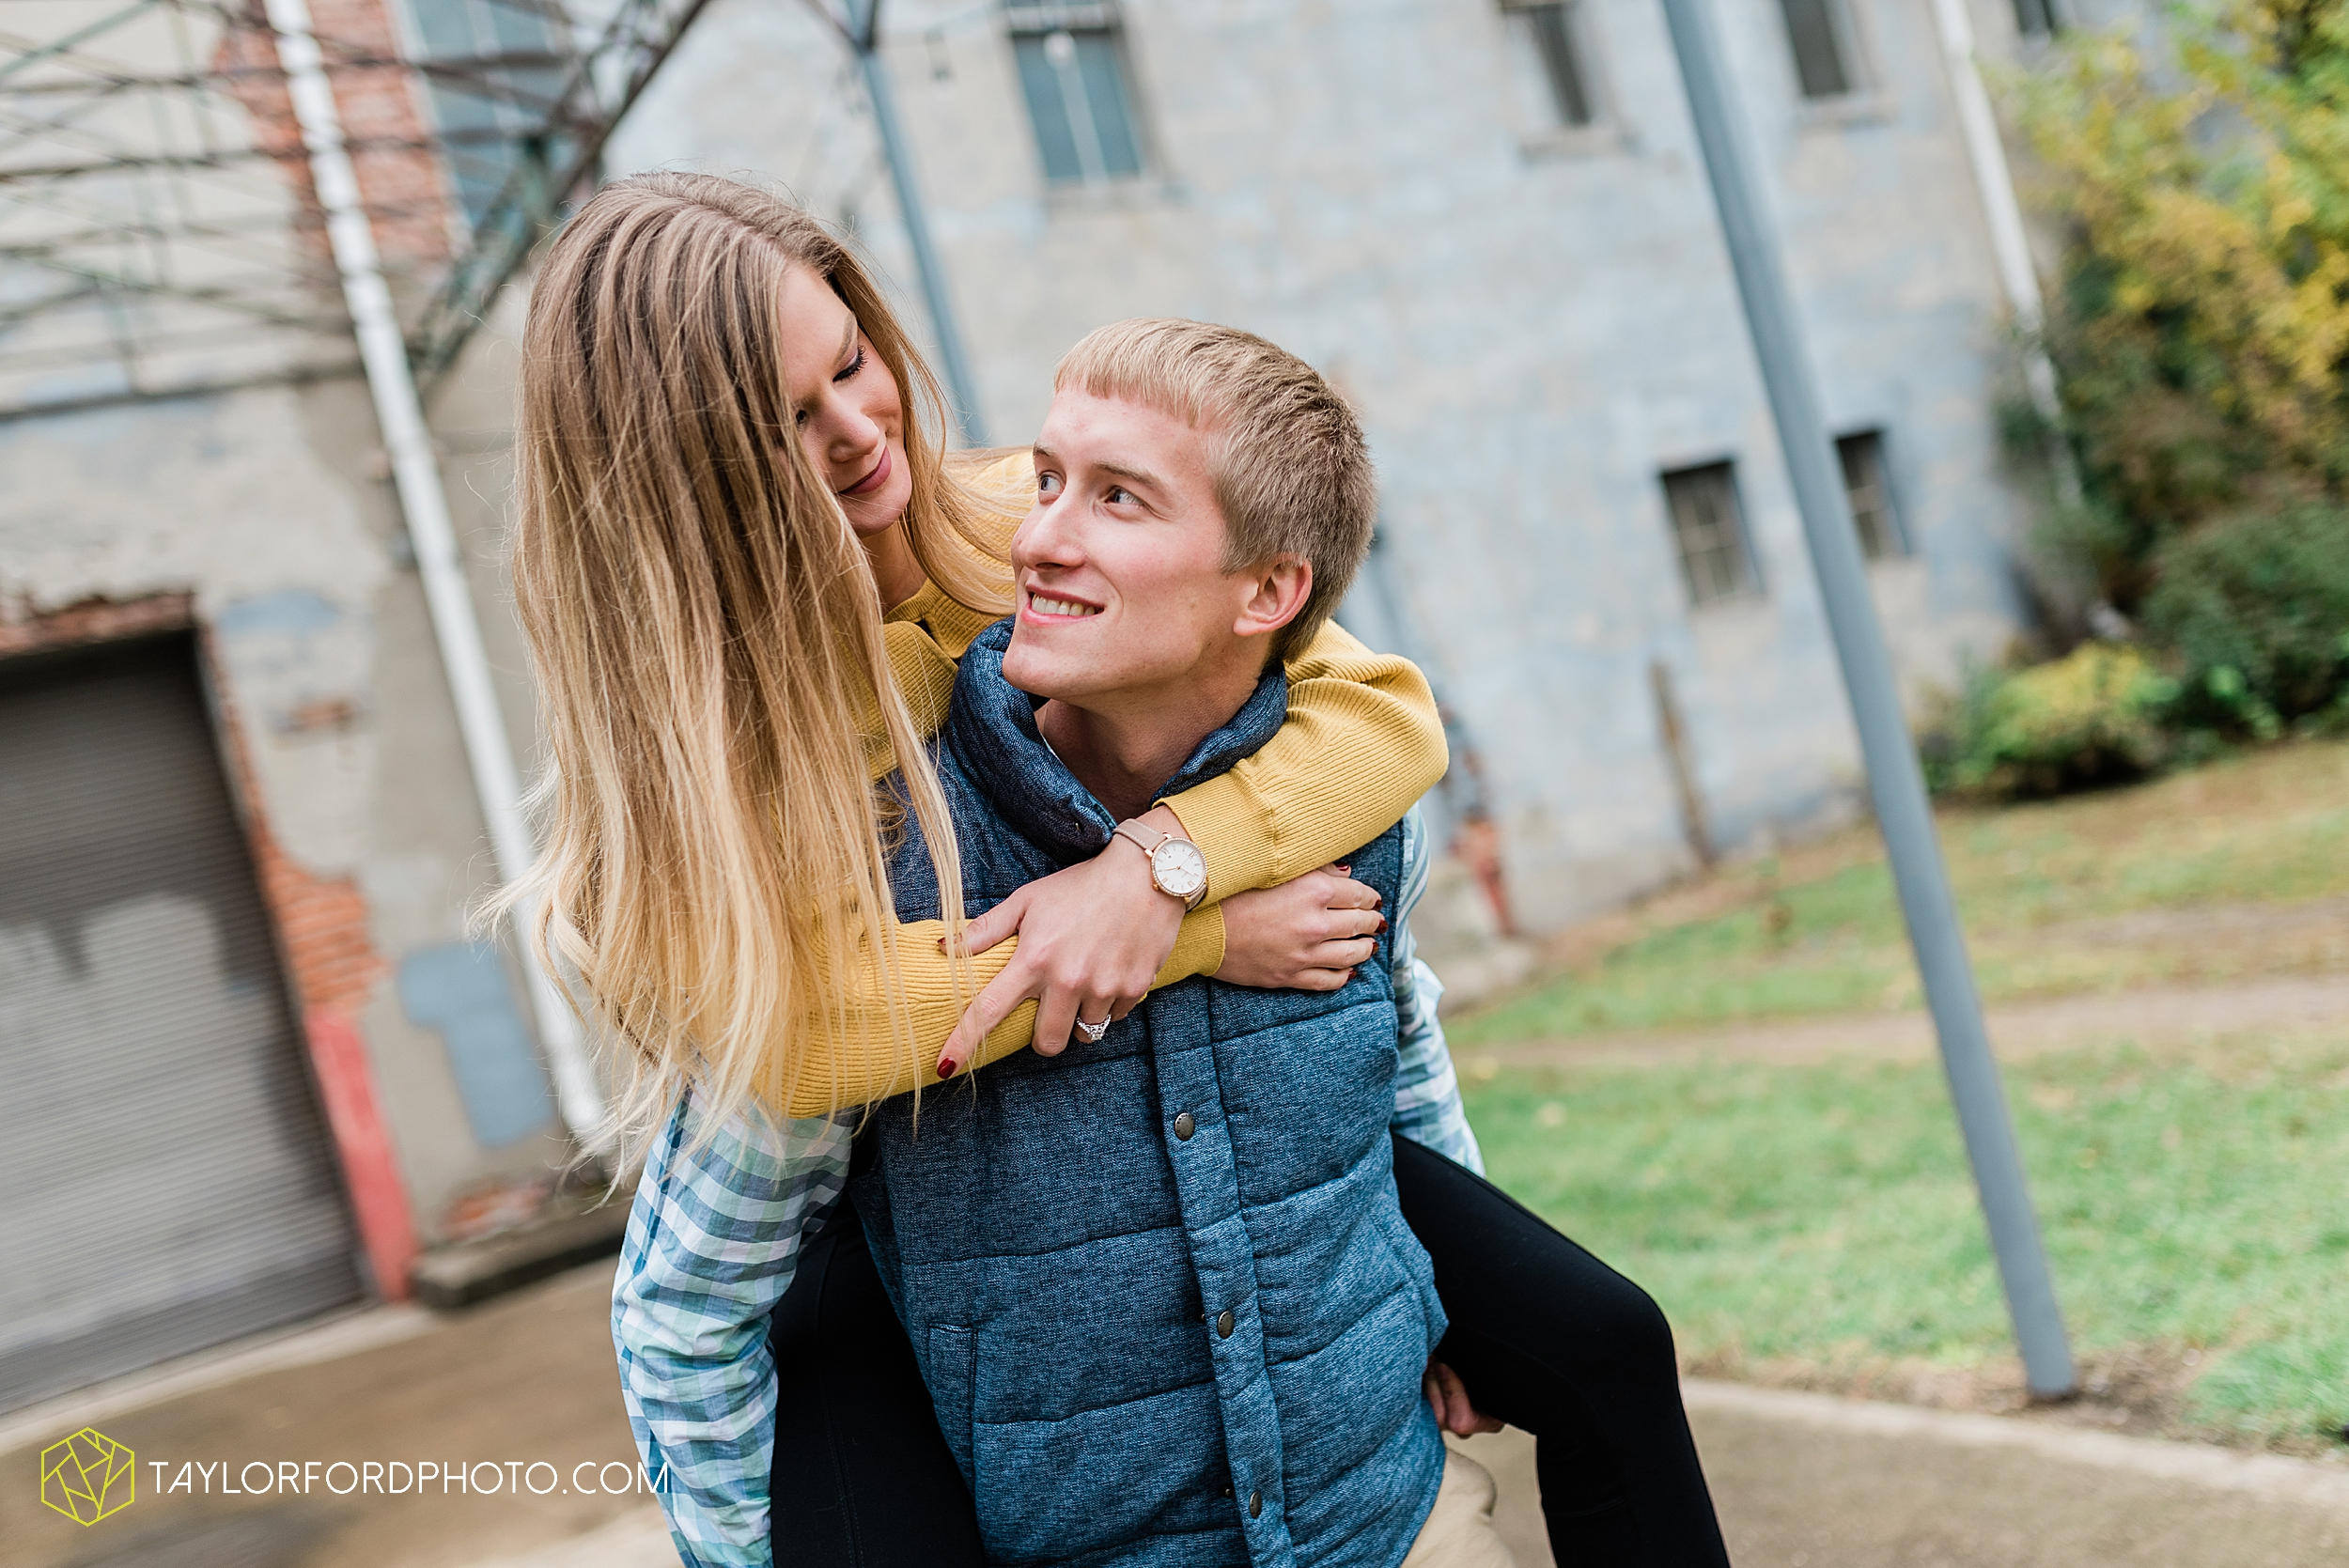 joce-chris-downtown-toledo-museum-of-art-engagement-fall-photographer-taylor-ford-photography_1481.jpg